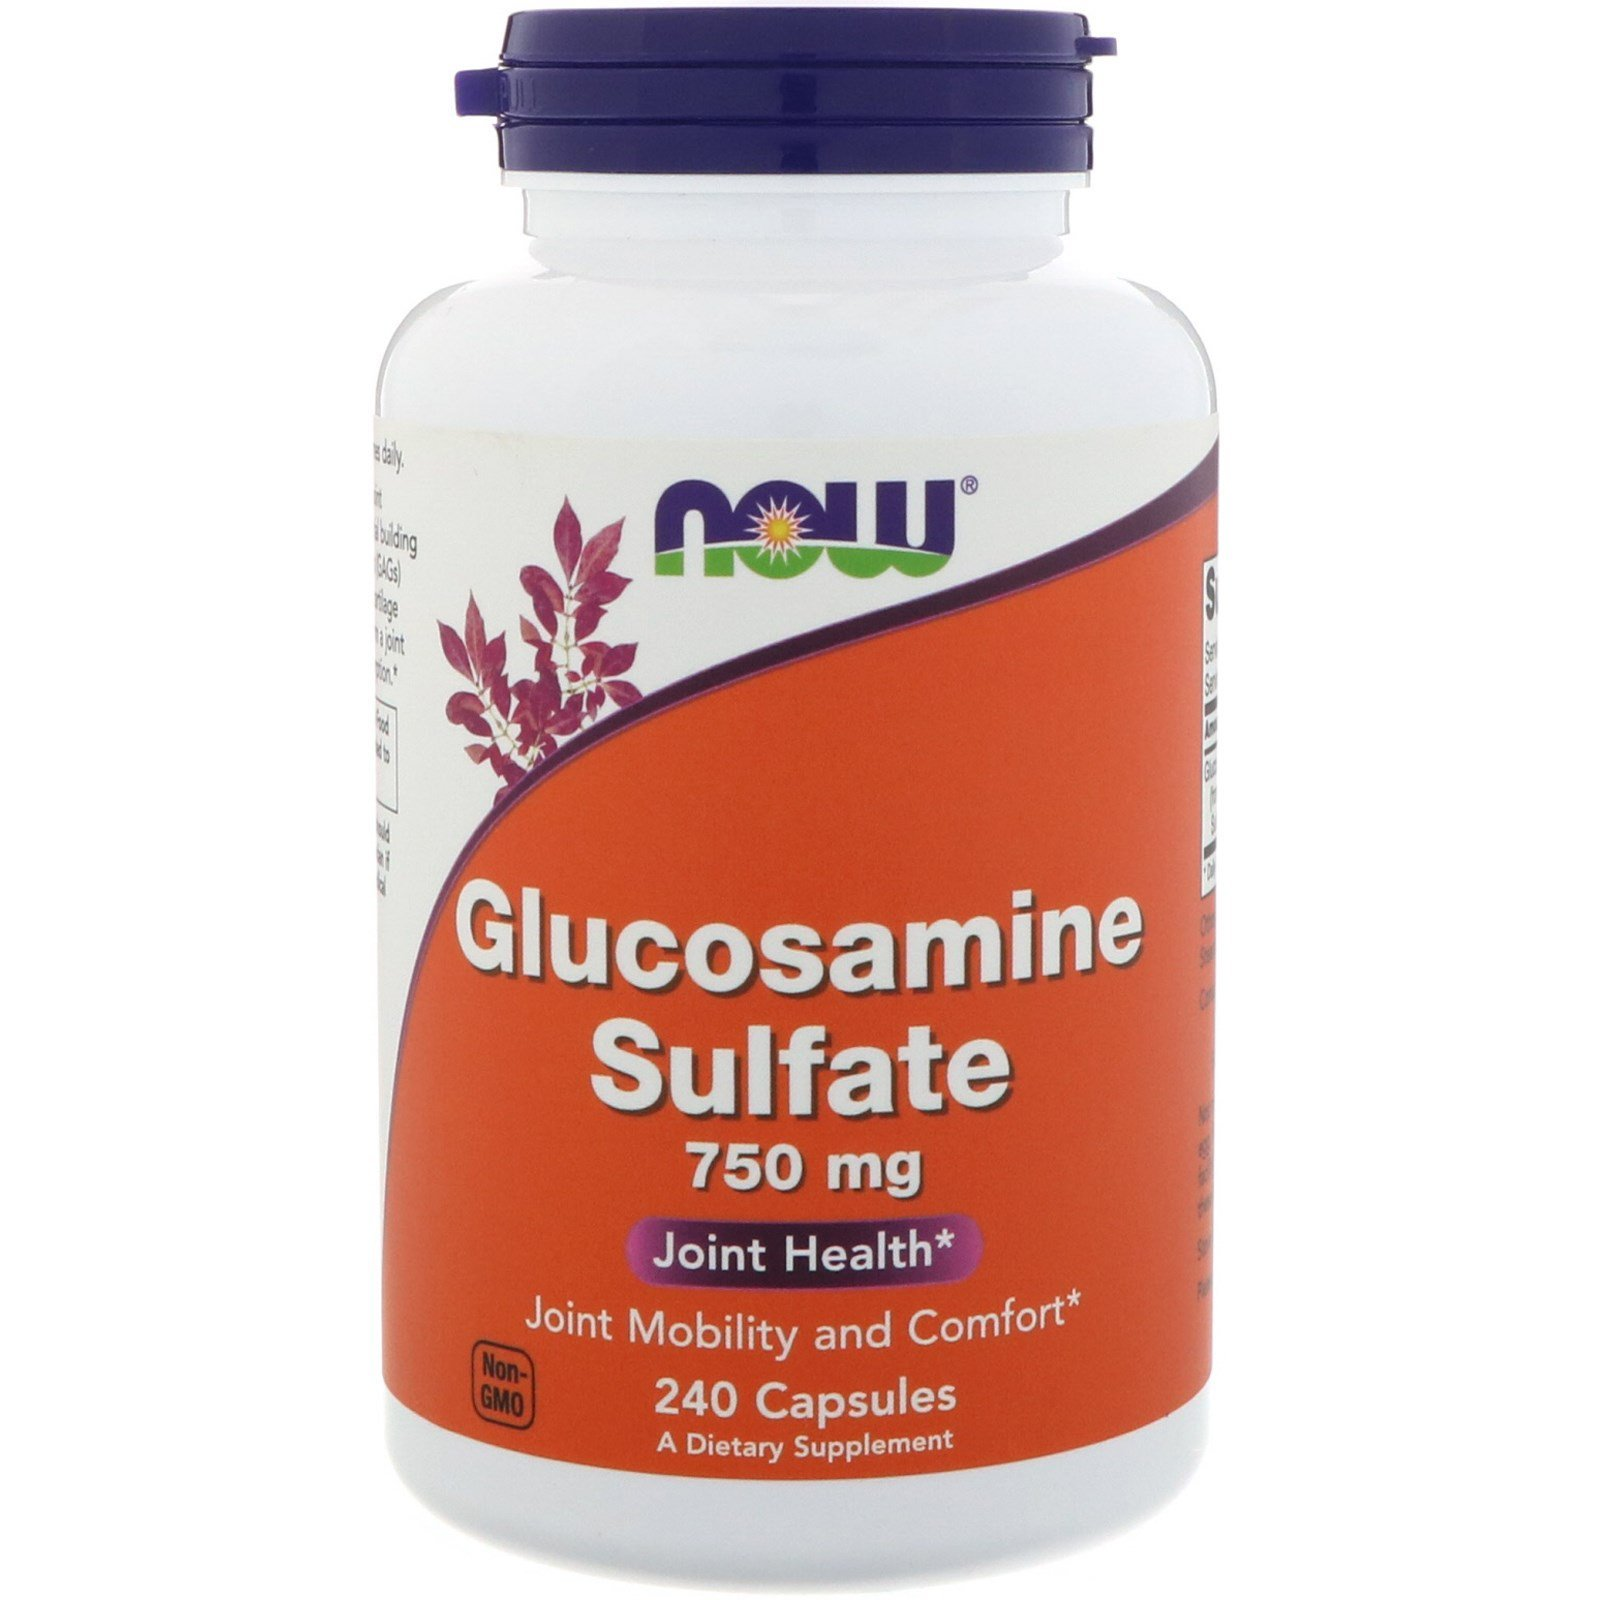 Глюкозамін сульфат, Glucosamine Sulfate, Now Foods, 750 мг, 240 капсул